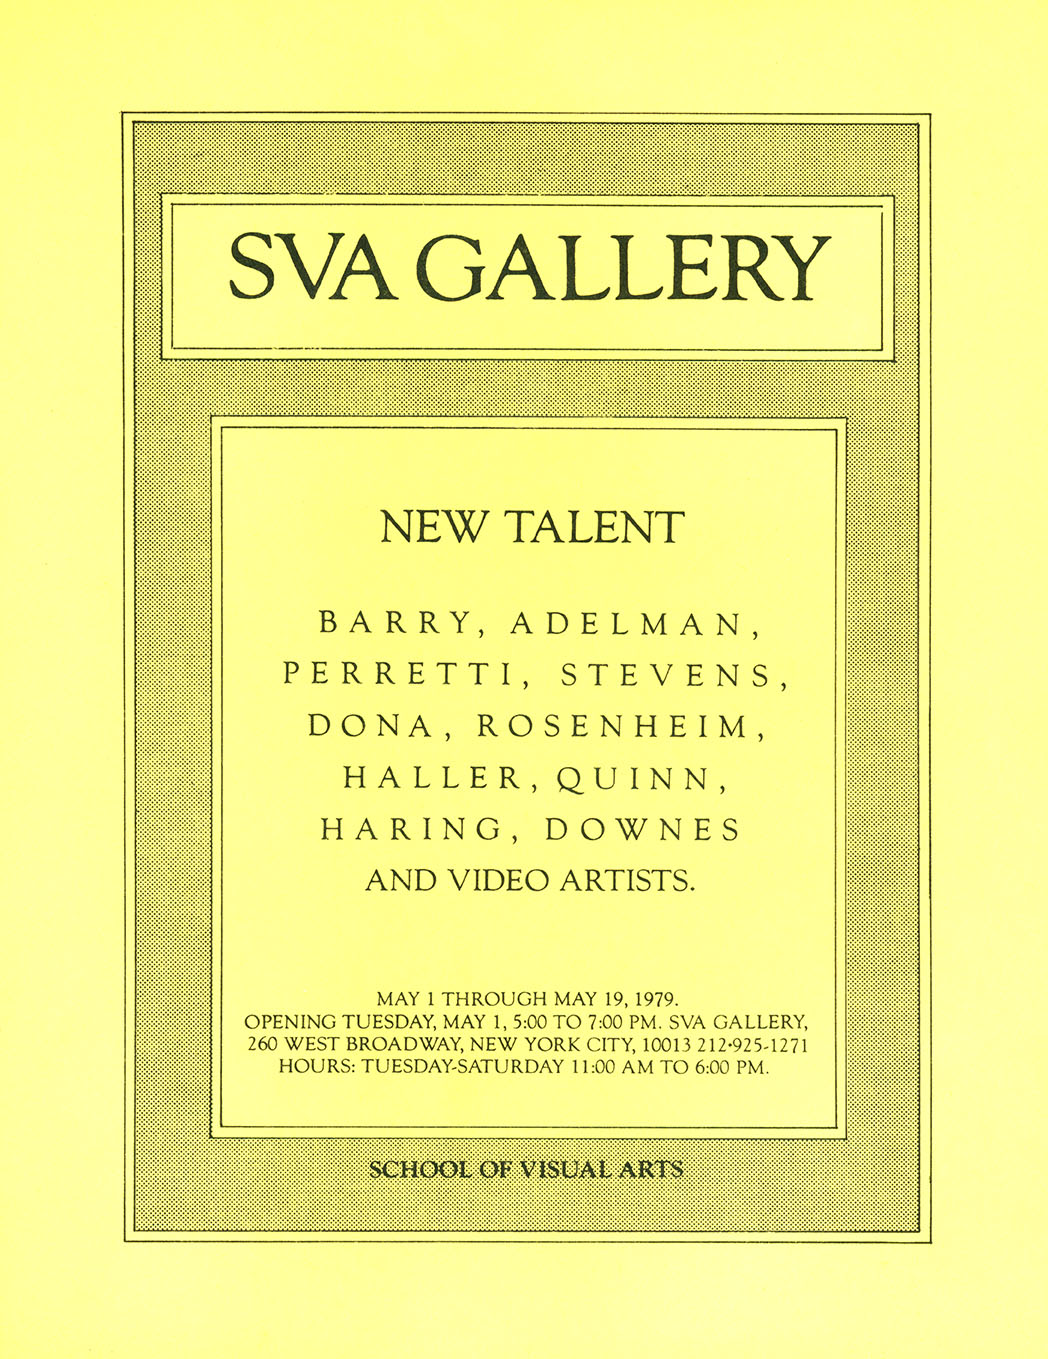 Black text on yellow background, listing exhibiting artists Barry, Adelman, Perretti, Stevens, Dona, Rosenheim, Haller, Quinn, Haring, Downes and Video Artists; supplementary text is contained in box with halftone border.